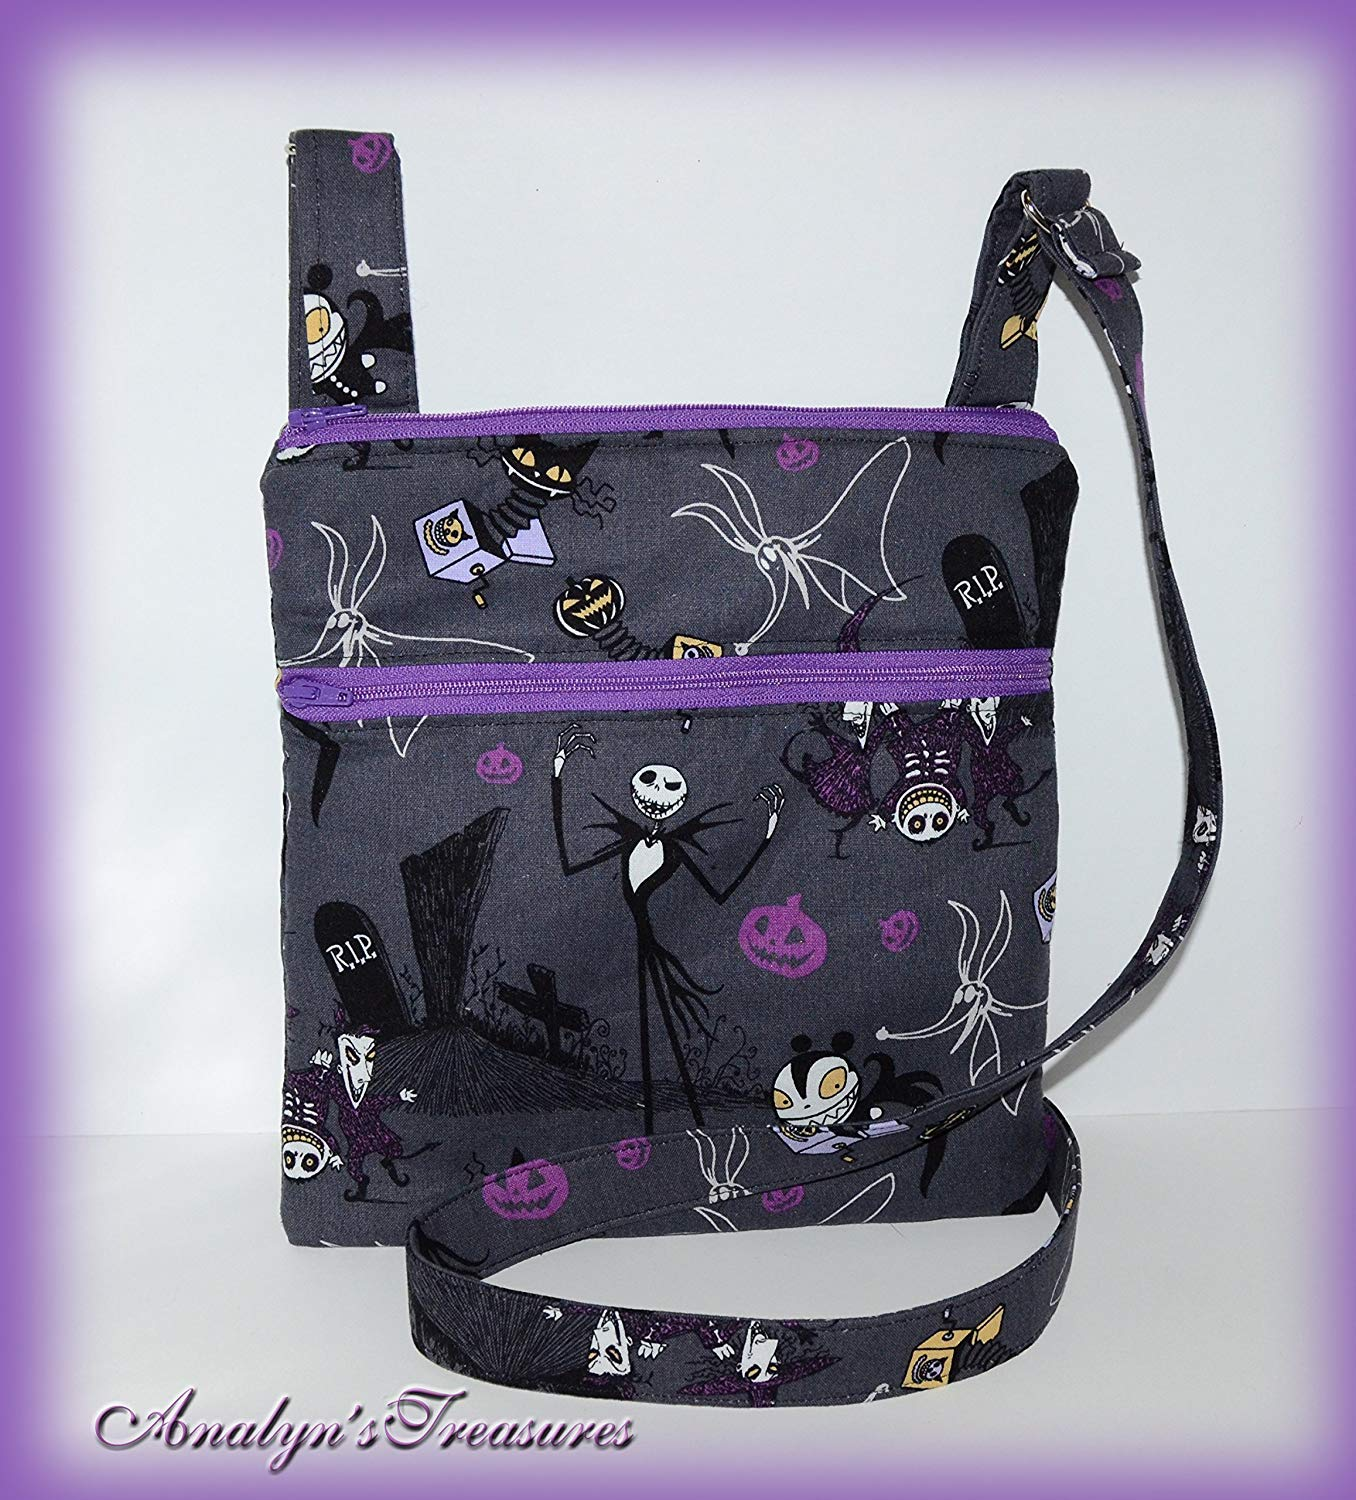 Nightmare Before Christmas Crossbody Bag, Crossbody Purse, Hipster Bag, Travel Bag, Travel Purse, Double Zippered Bag, Passport Bag